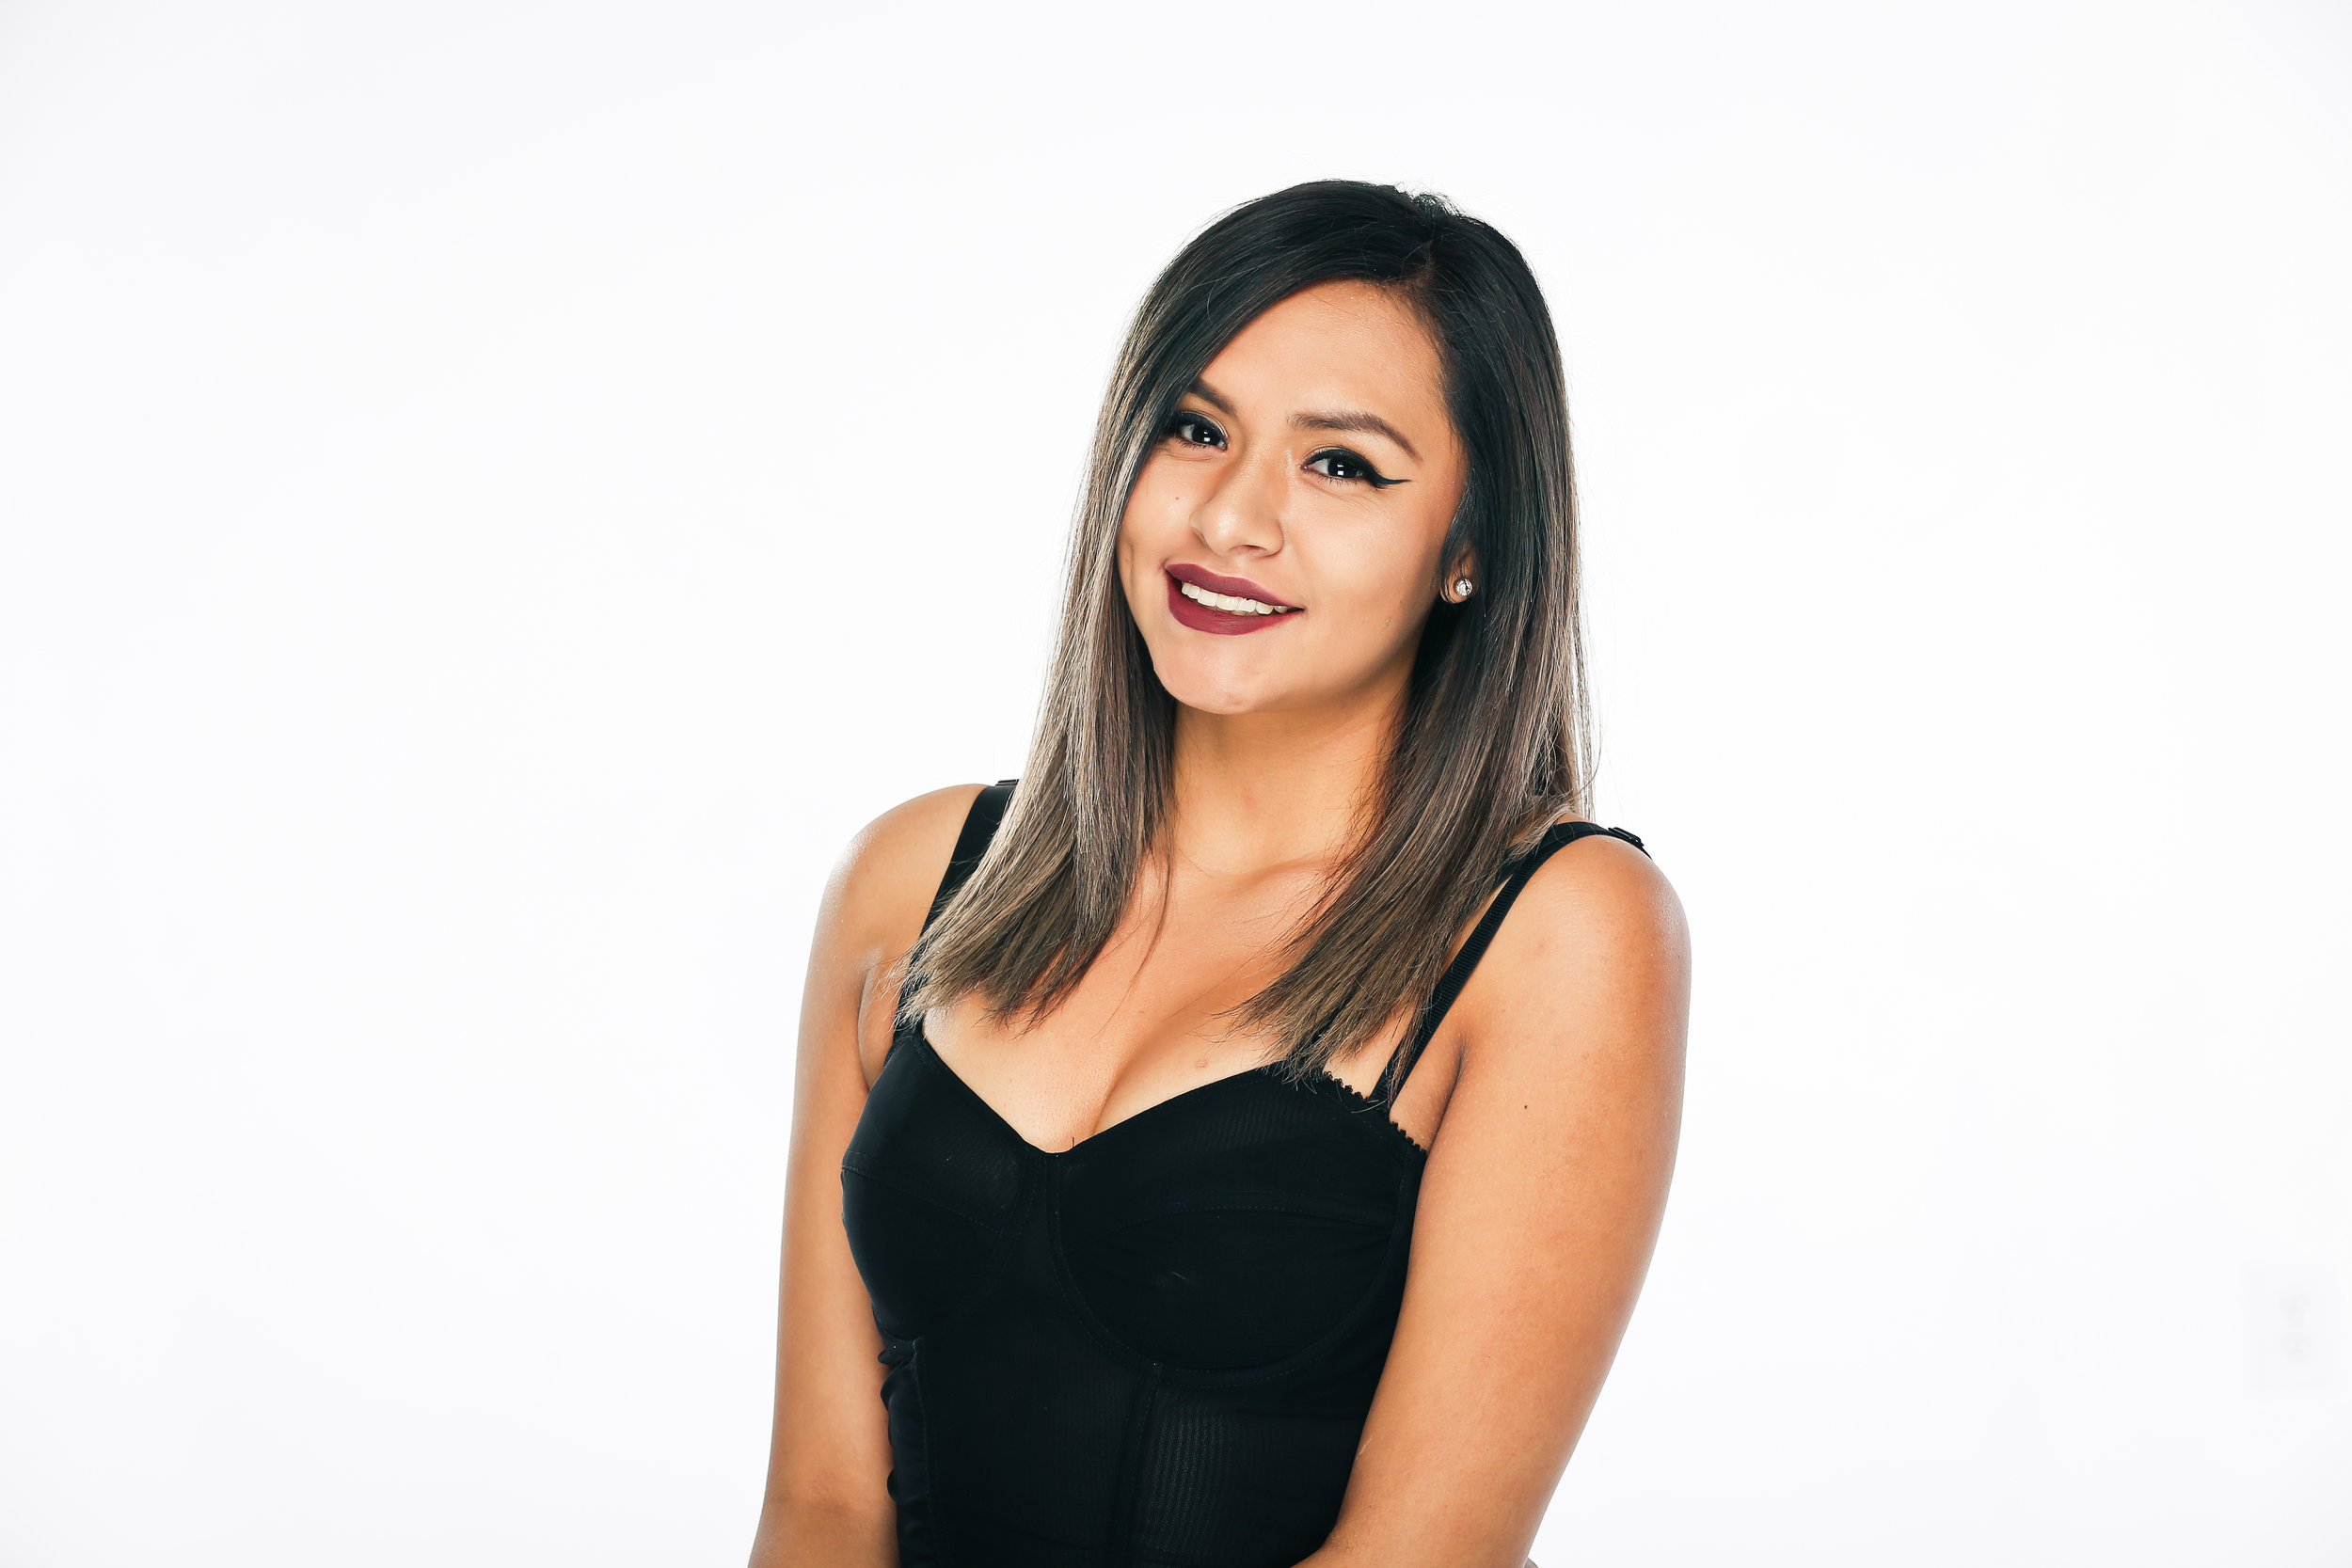 Diana Diaz -  Diana has been in the industry for almost a year and is fascinated by all aspects of beauty. Even though she is young, she is very ambitious and dedicated to our clients. She loves everything we do as hairstylists and excited to learn many new things. She admires our vision and strive to follow through day in & day out.